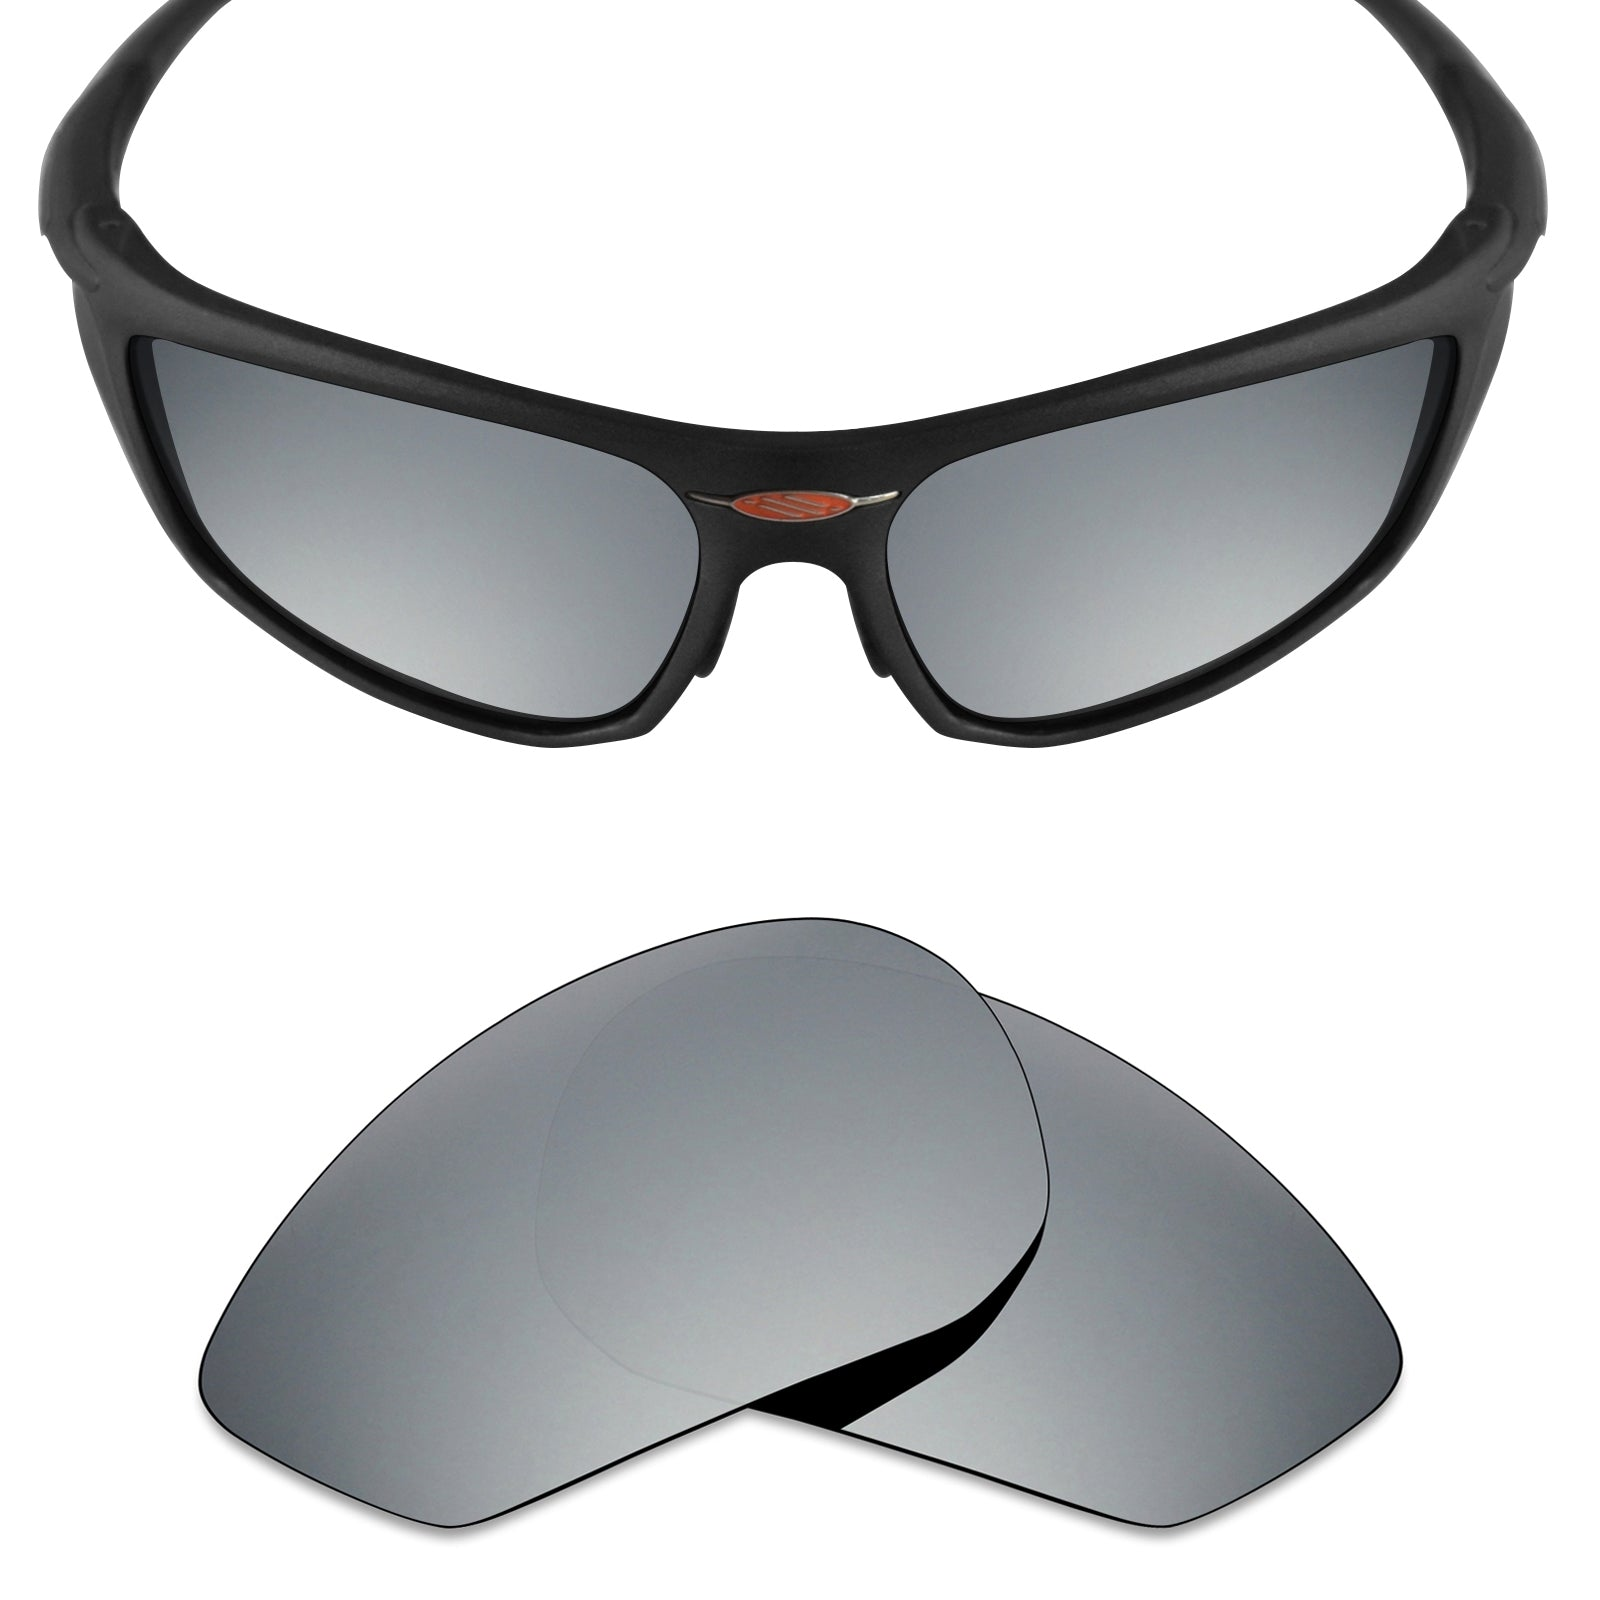 Mryok Replacement Lenses for Rudy Project Zyon Options